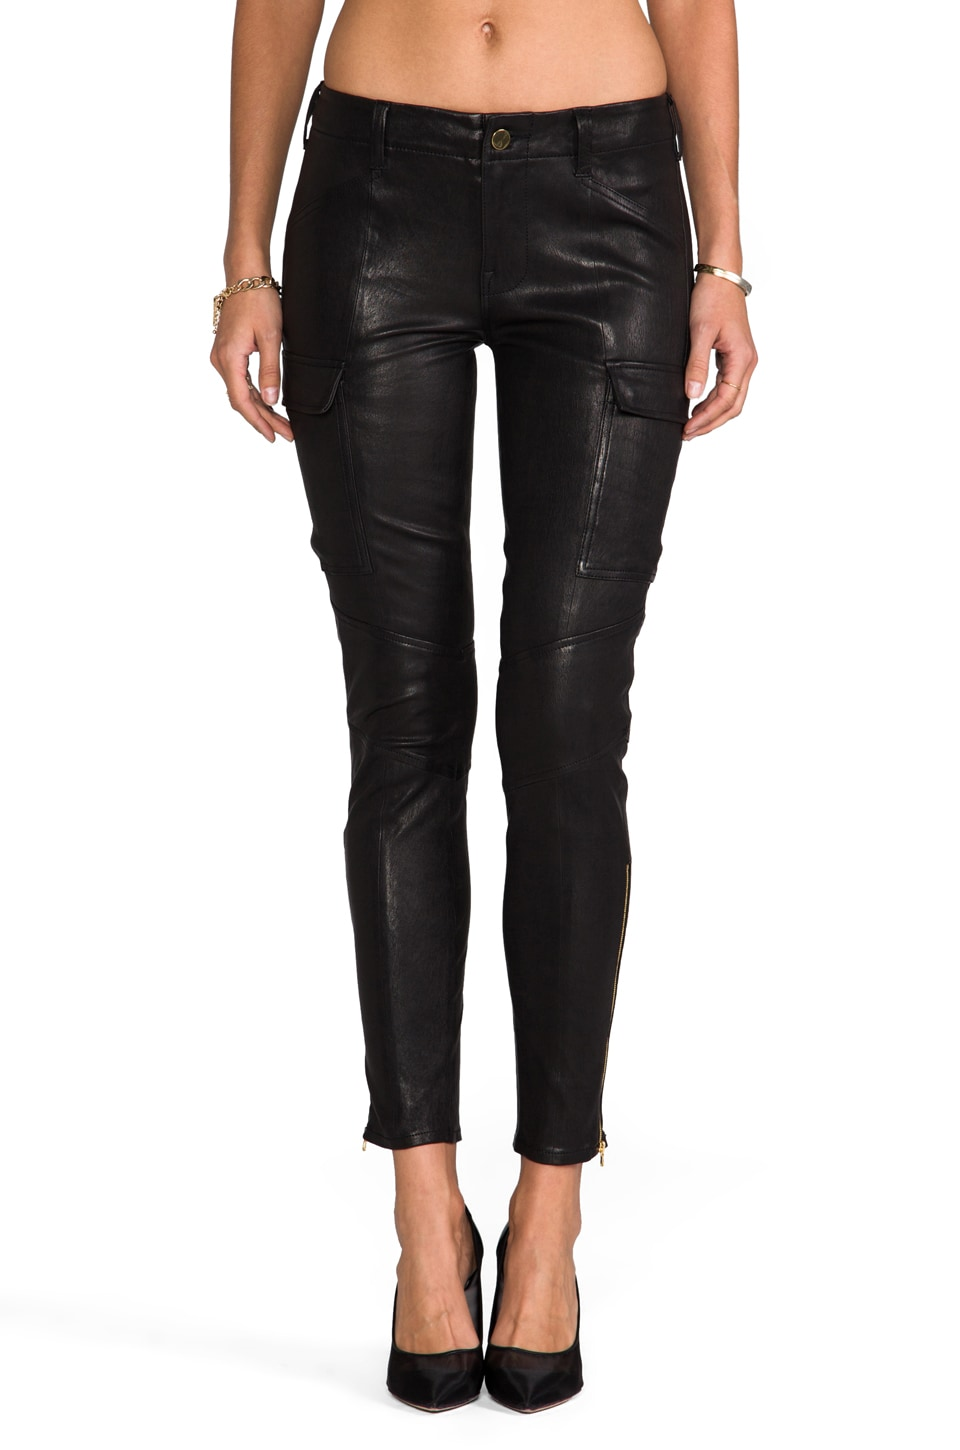 J Brand Leather Houlihan in Noir